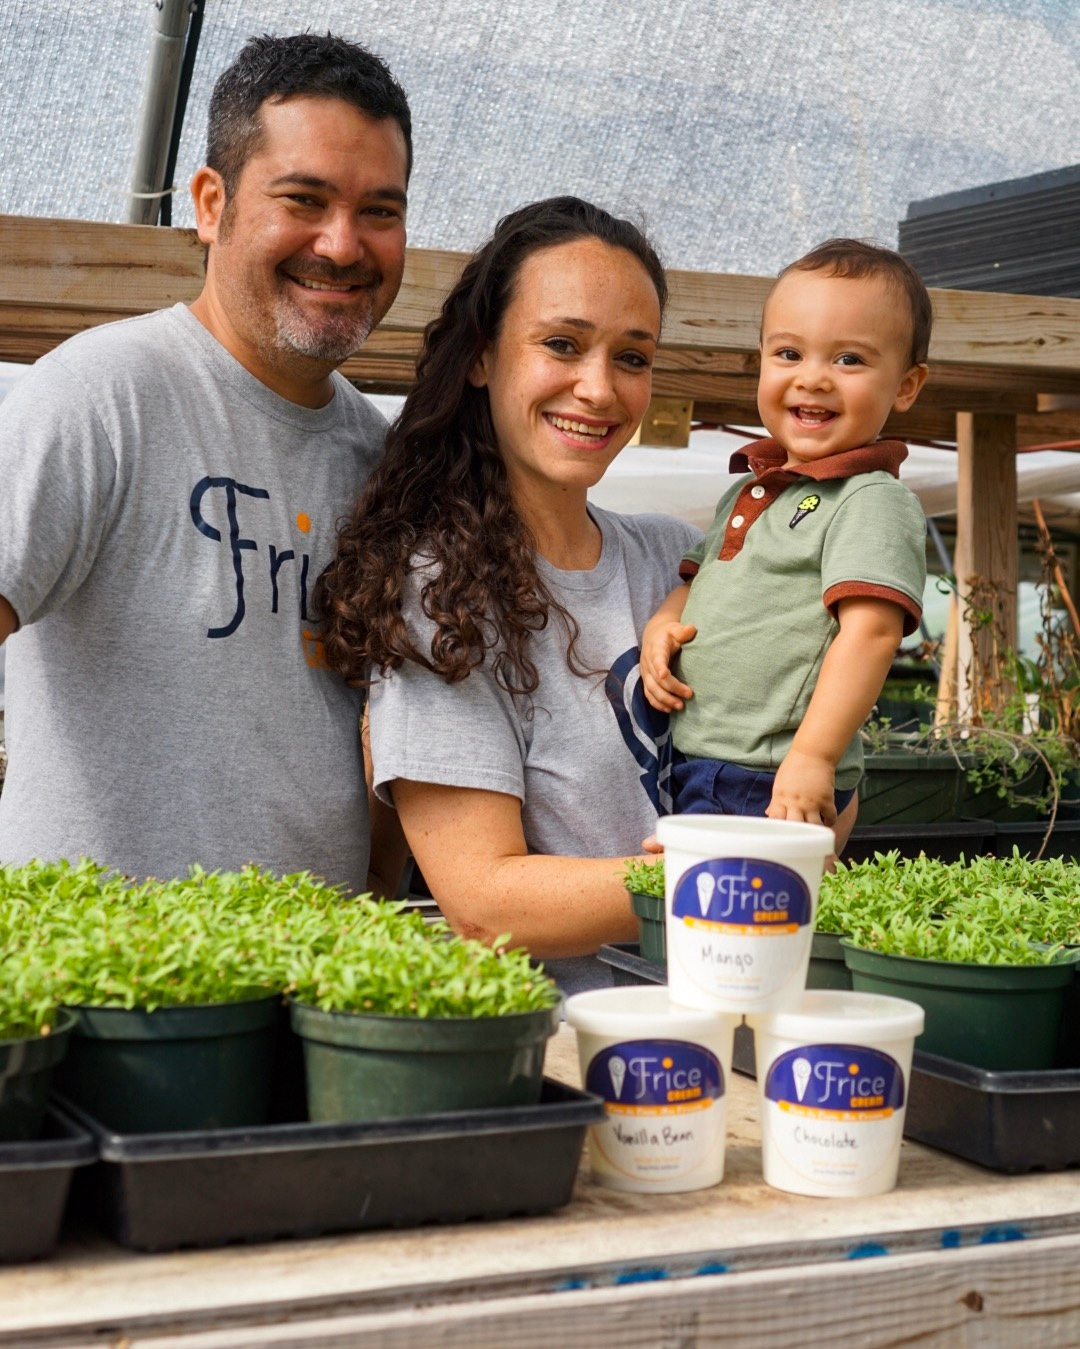 Jeremy, Alissa & Jaxon Frice hanging out at Harpke Family Farm where they source some ingredients